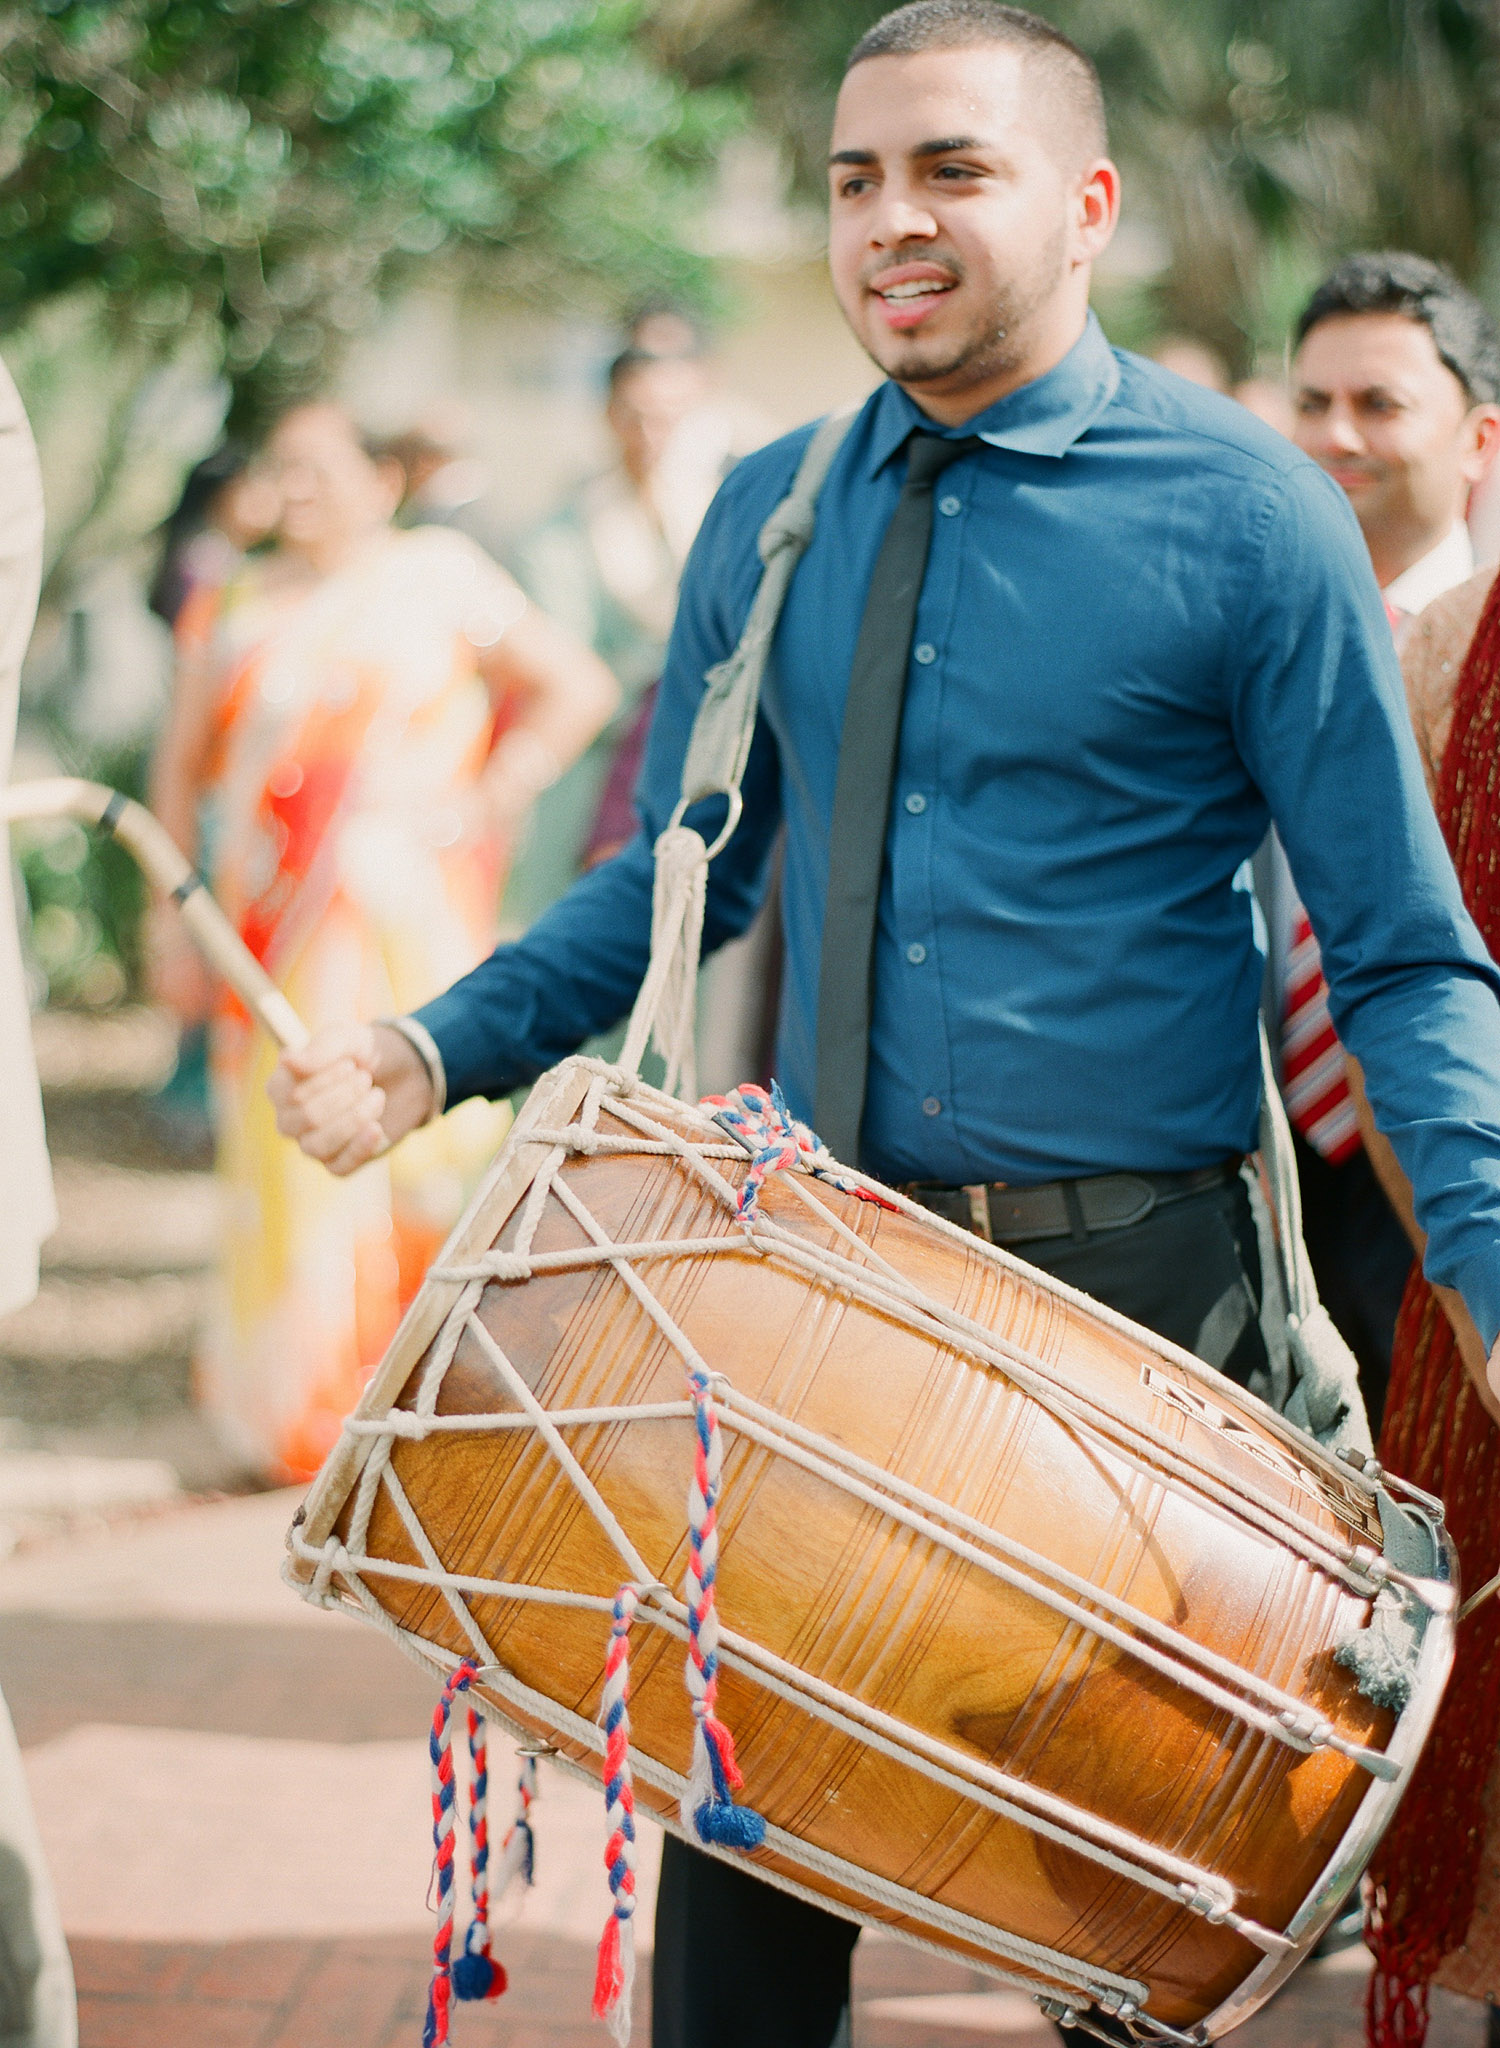 drummer creates a beat for the groom's parade at this Indian Wedding in Florida photographed by Destination Wedding Photographer, LExia Frank - a top indian wedding photographer - who shoots film for luxury indian weddings preferring the soft skin tones and vibrant colors for indian weddings in india and worldwide